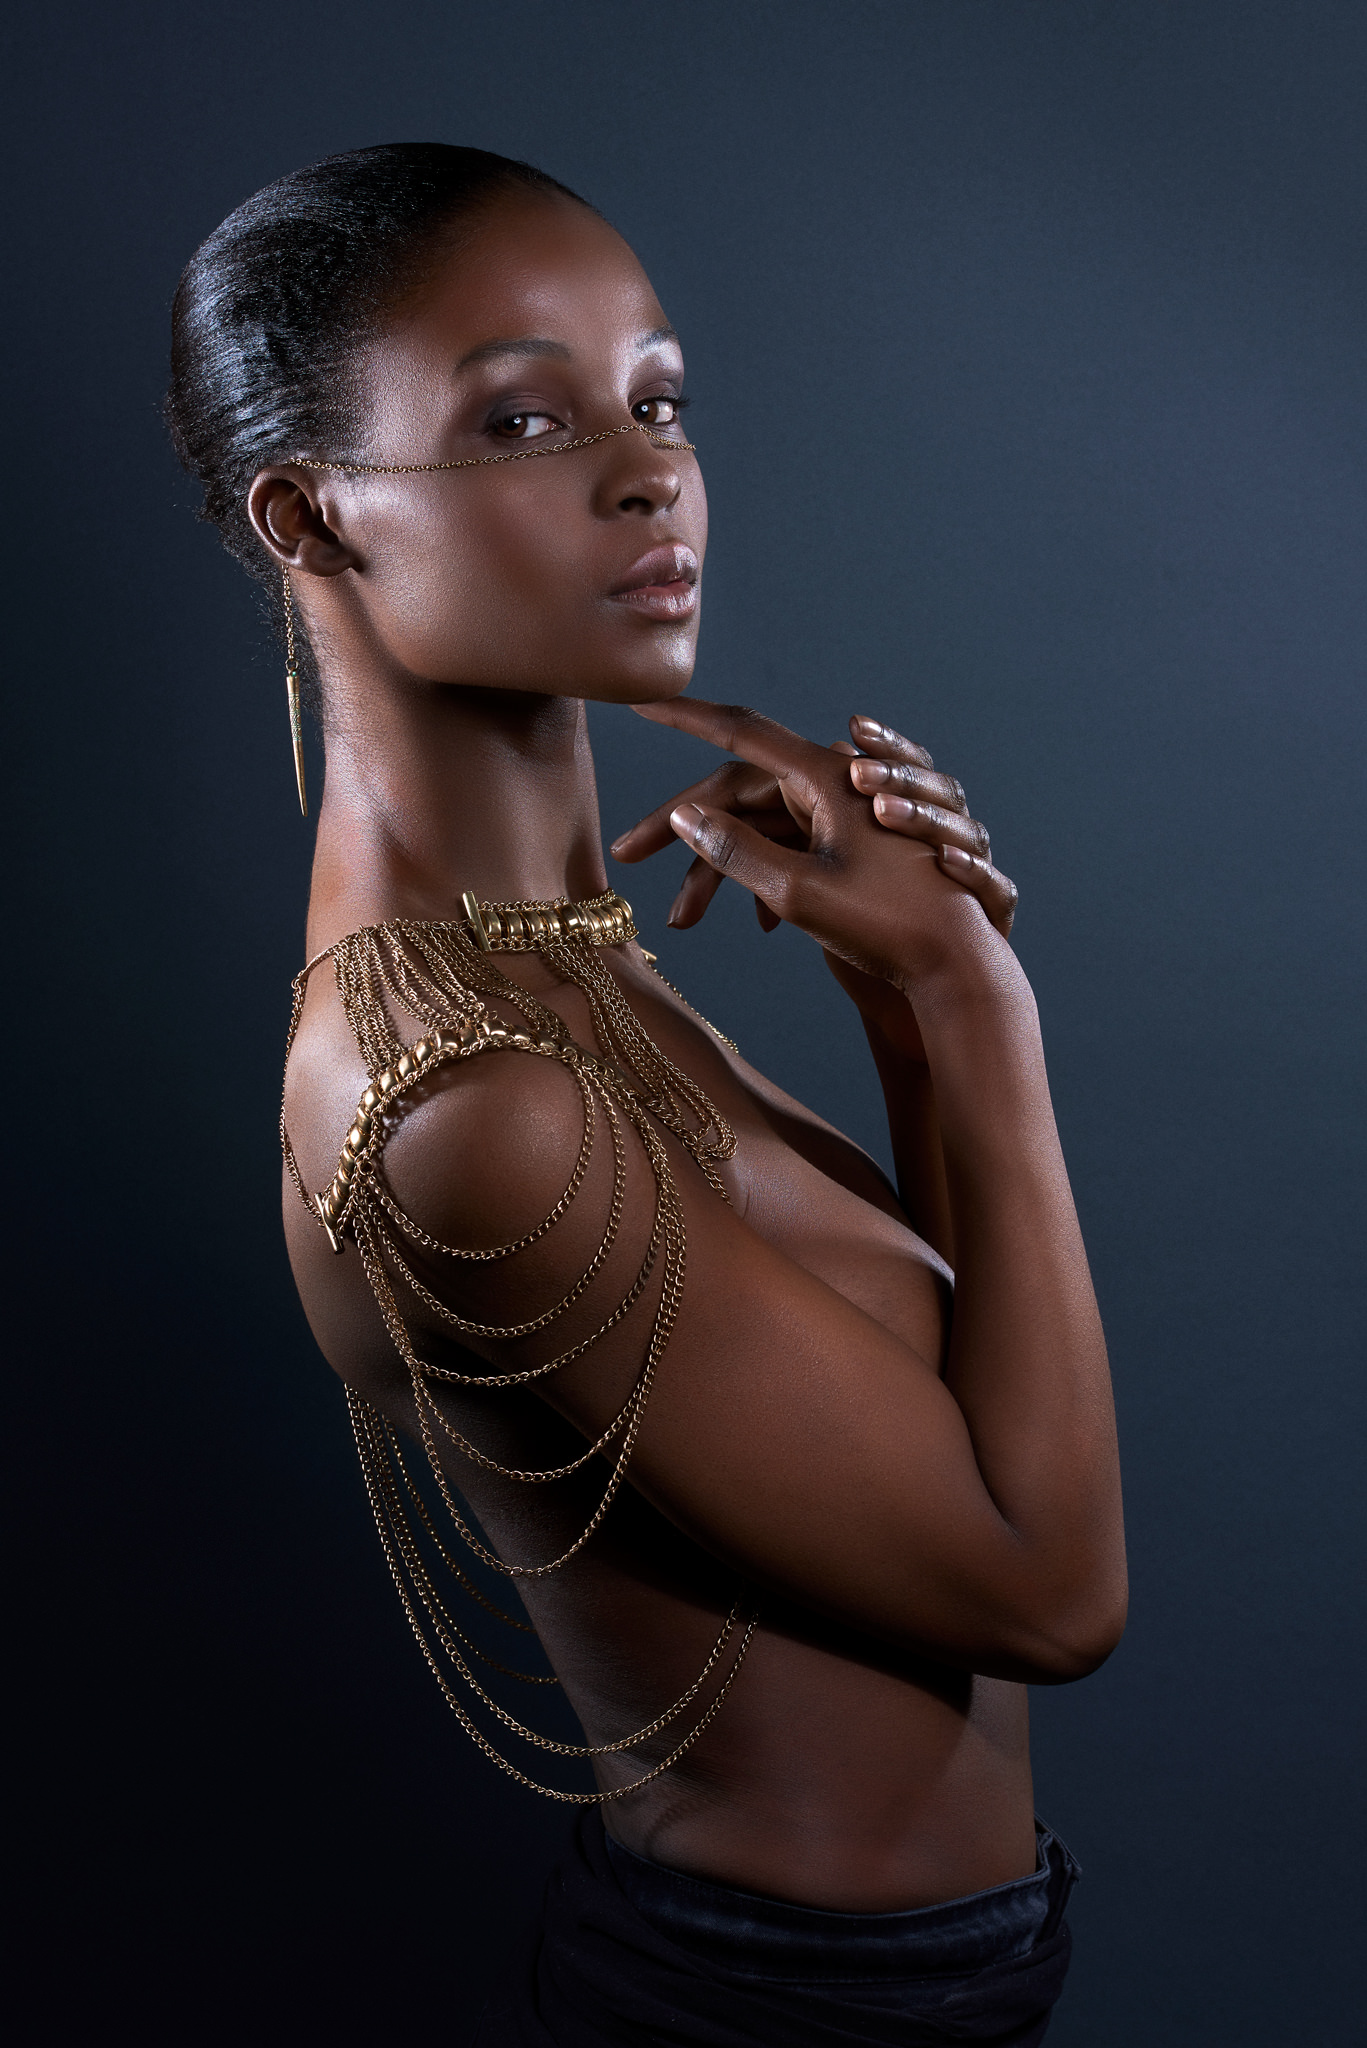 topless  black model covering herself wearing body and face jewellery fashion editorial